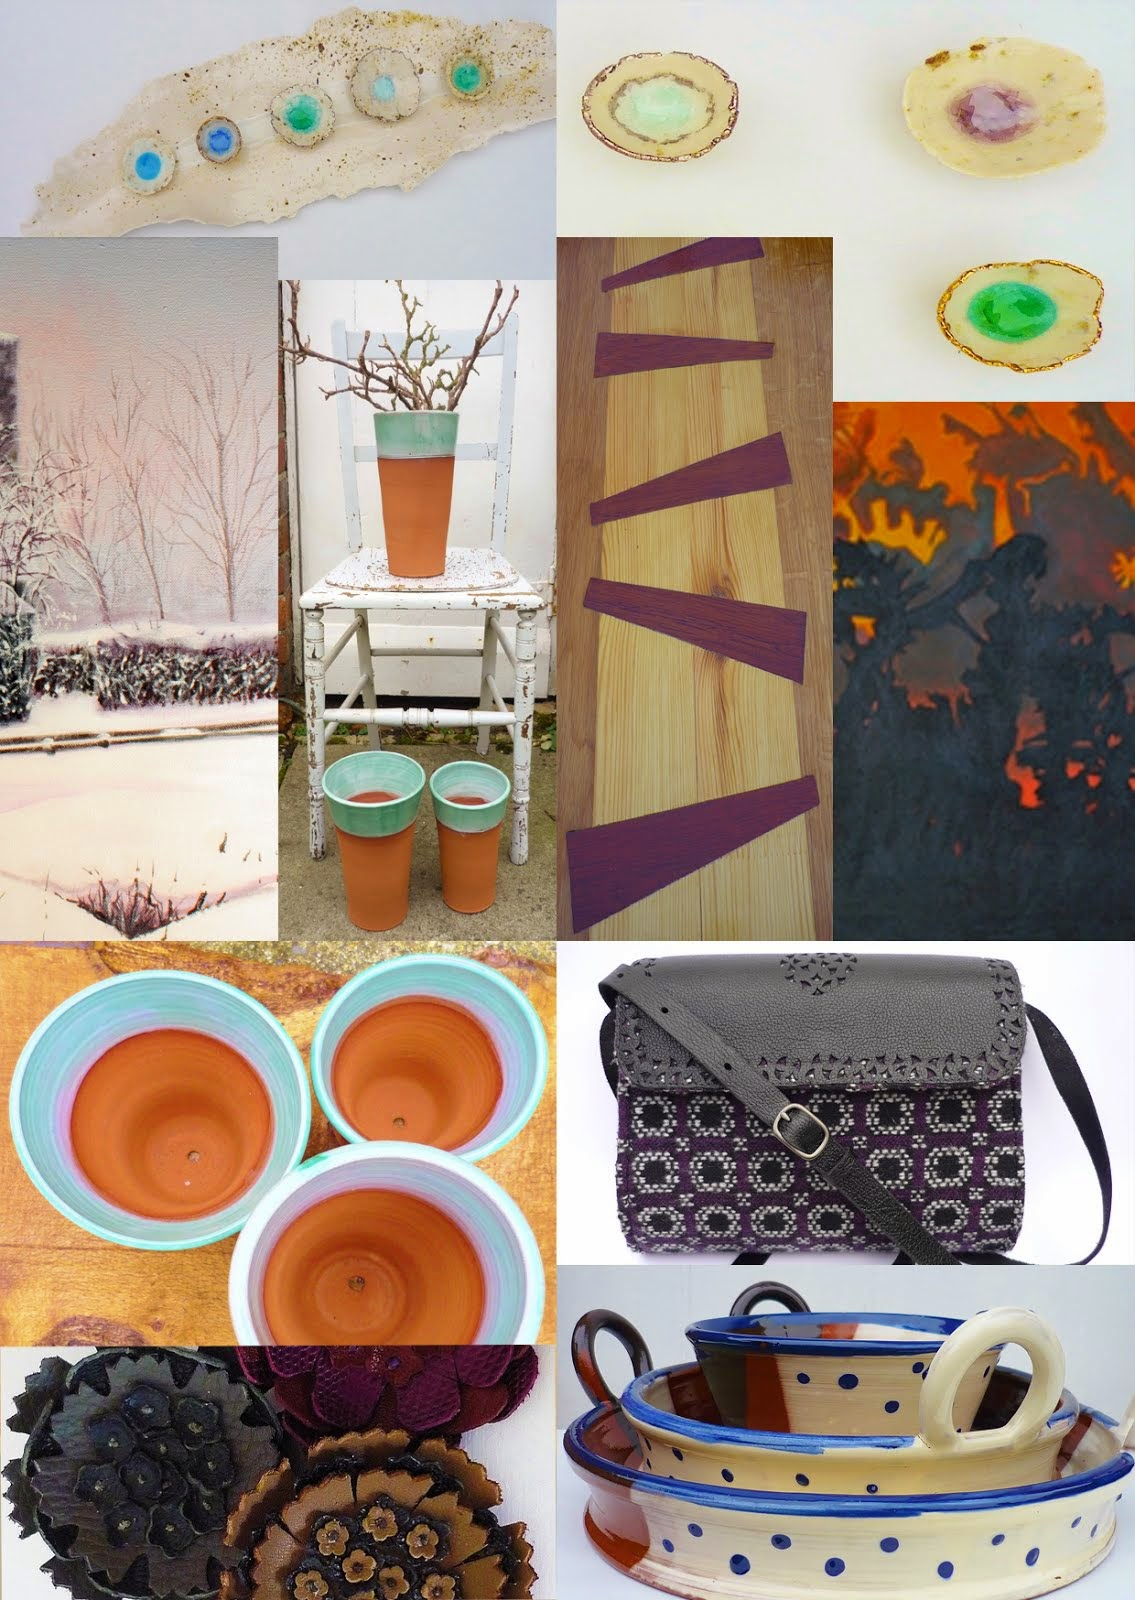 CHRISTMAS AT STUDIO 21. 28th - 30th November 2014